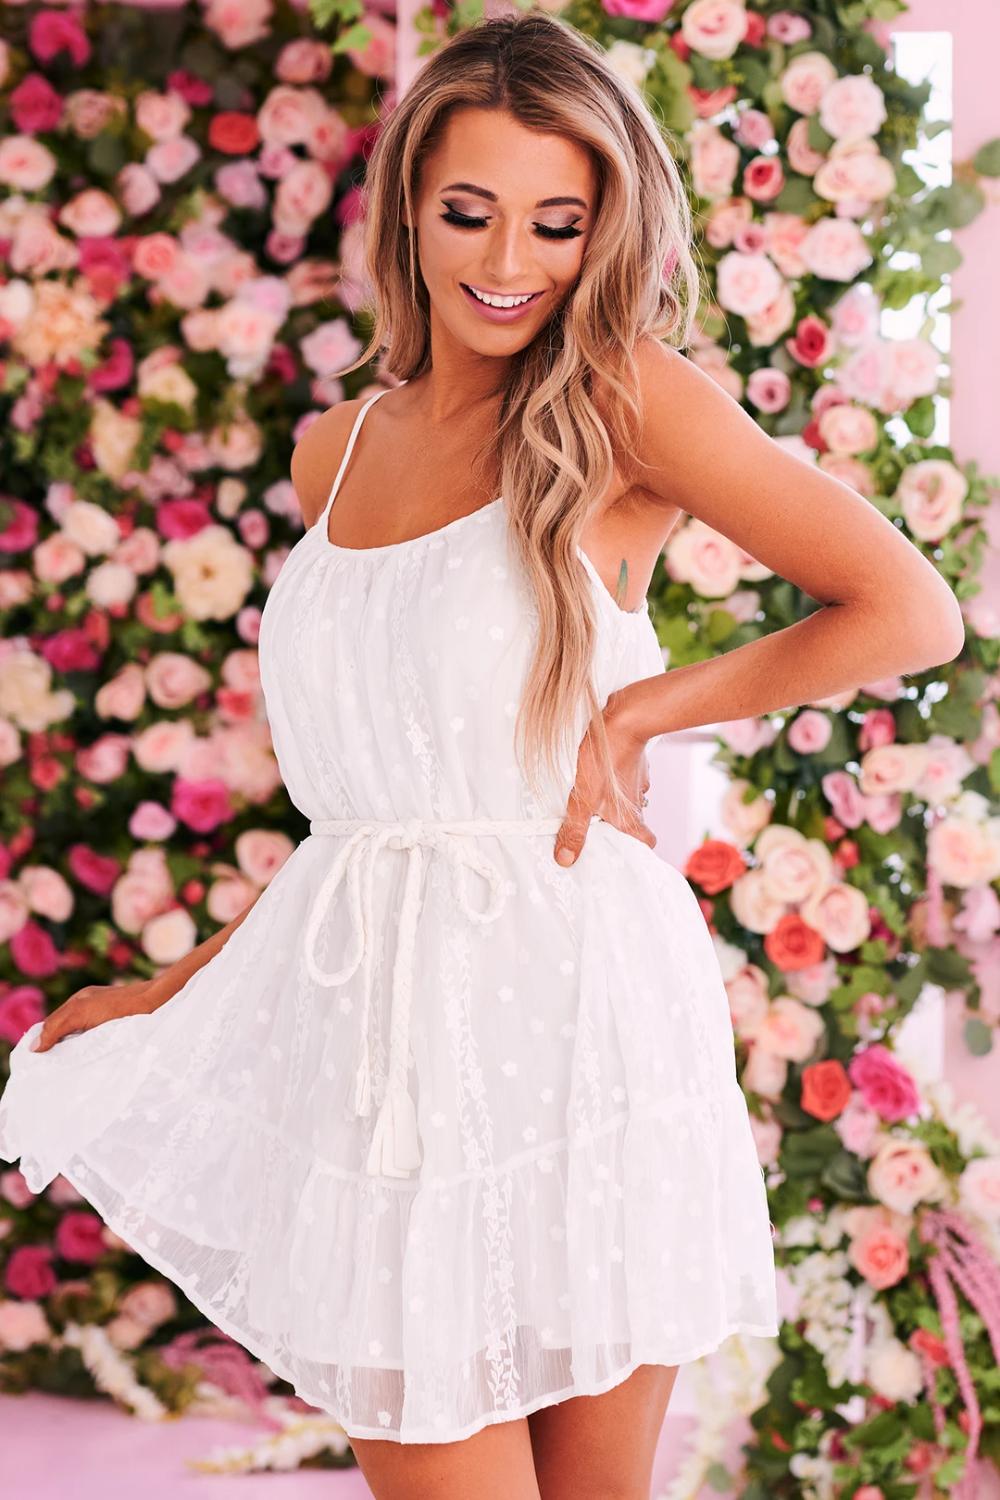 Talk Of The Town Floral Embroidered Dress White In 2021 Floral Embroidered Dress Dresses Embroidered Dress [ 1500 x 1000 Pixel ]